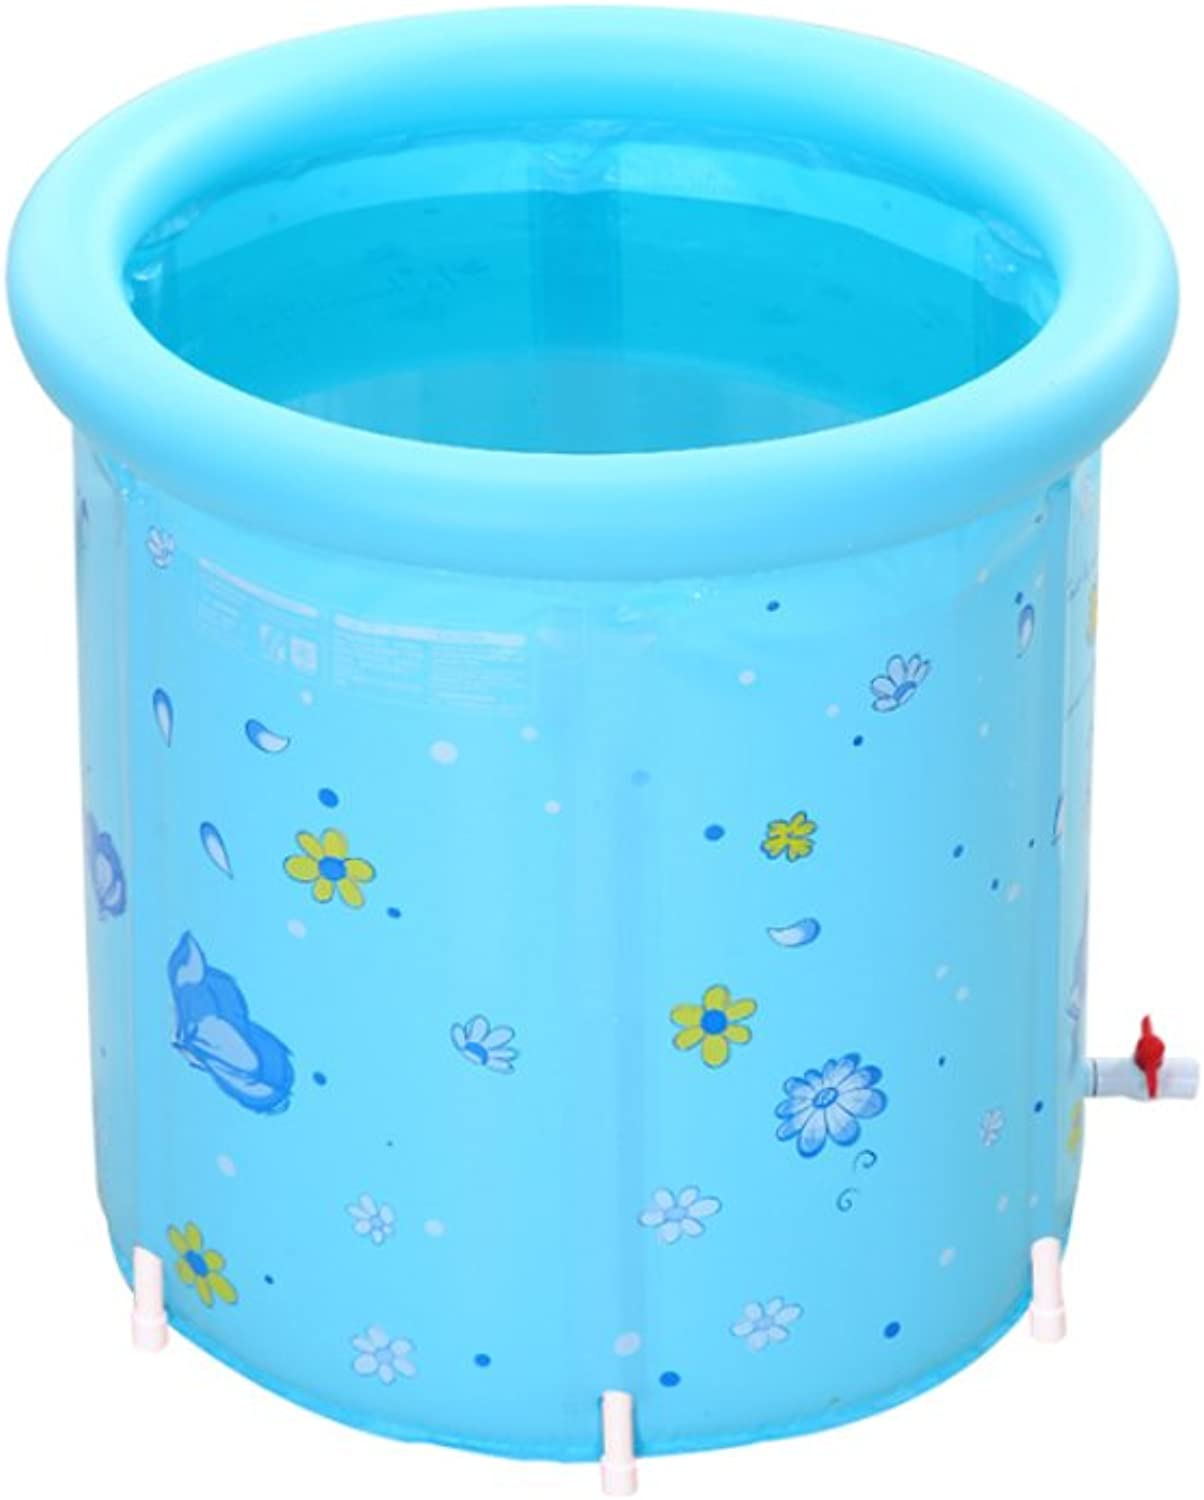 AMINSHAP Do Not Need Inflatable Adult Bathtub Fashion Large Size Thickening Bracket Bucket Folding 8080cm Environmental Predection Material